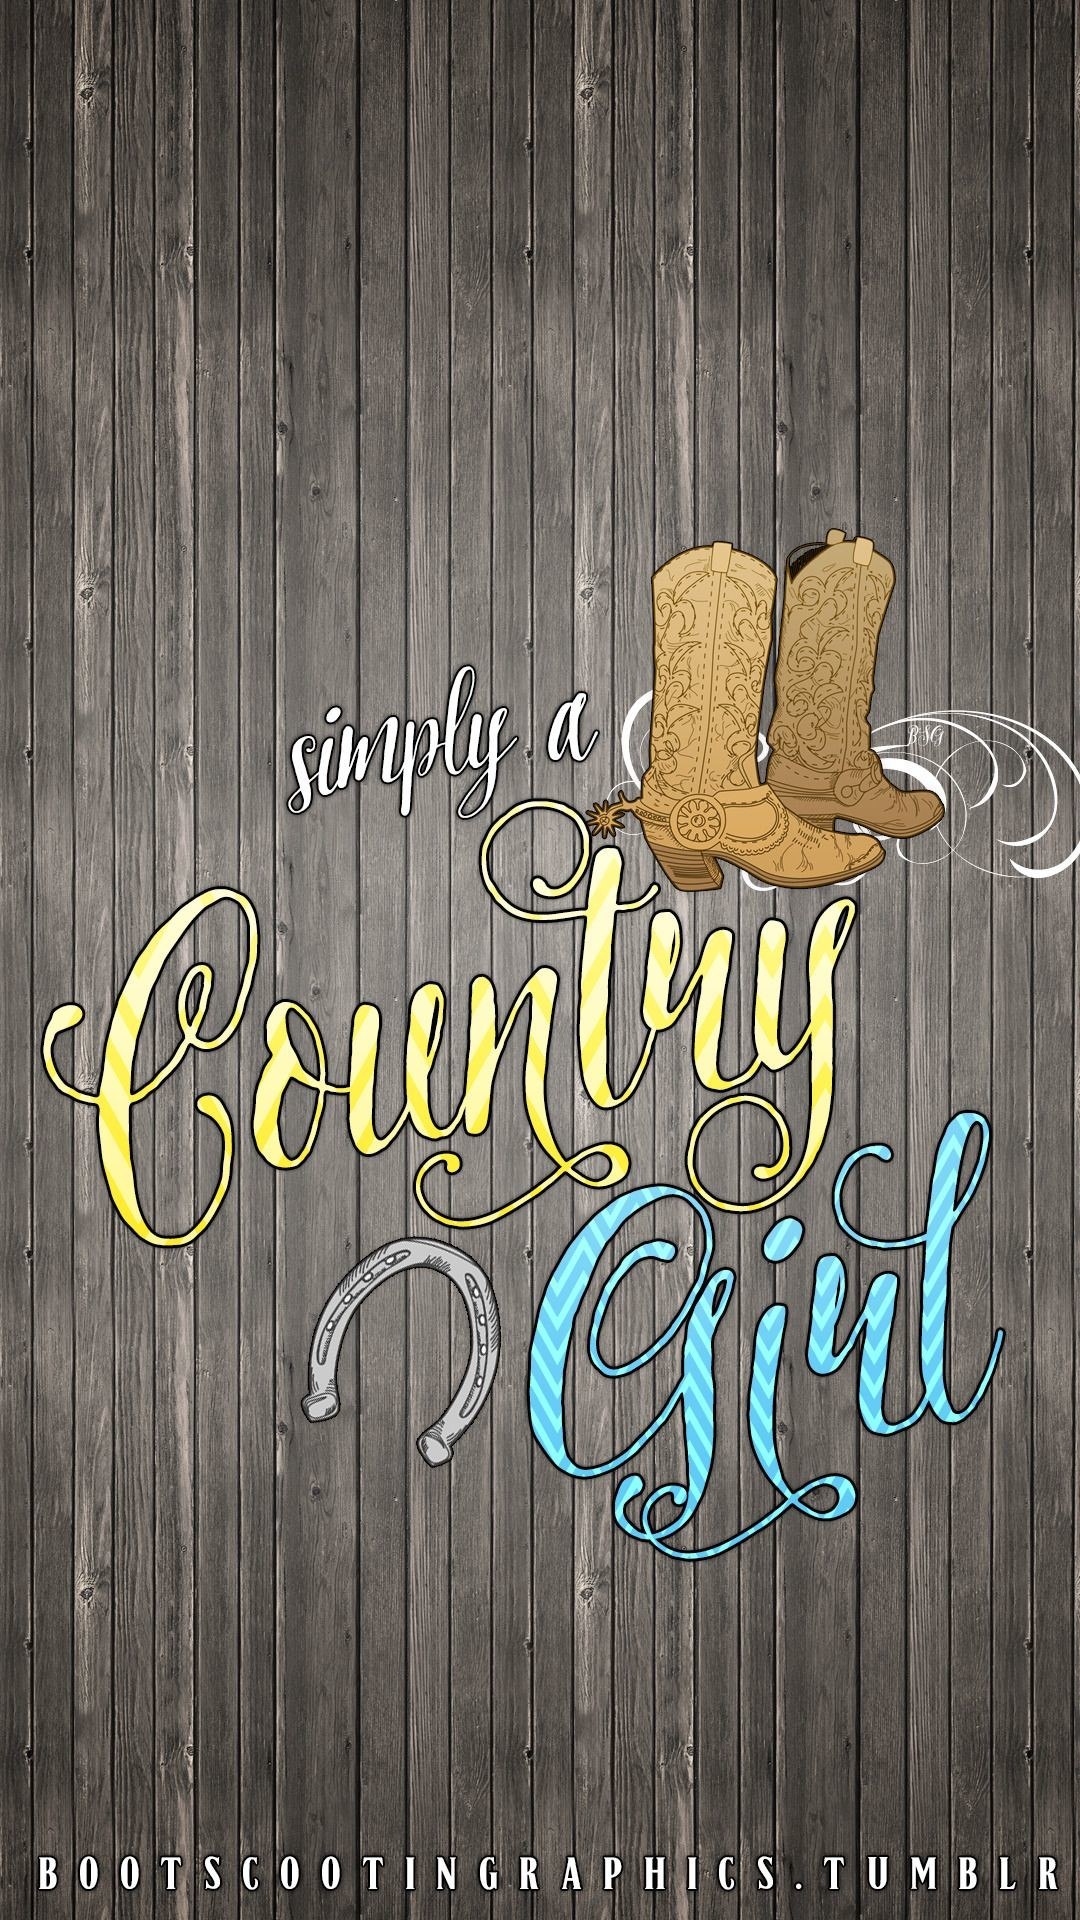 Camo Country Girl Wallpaper (60+ images)